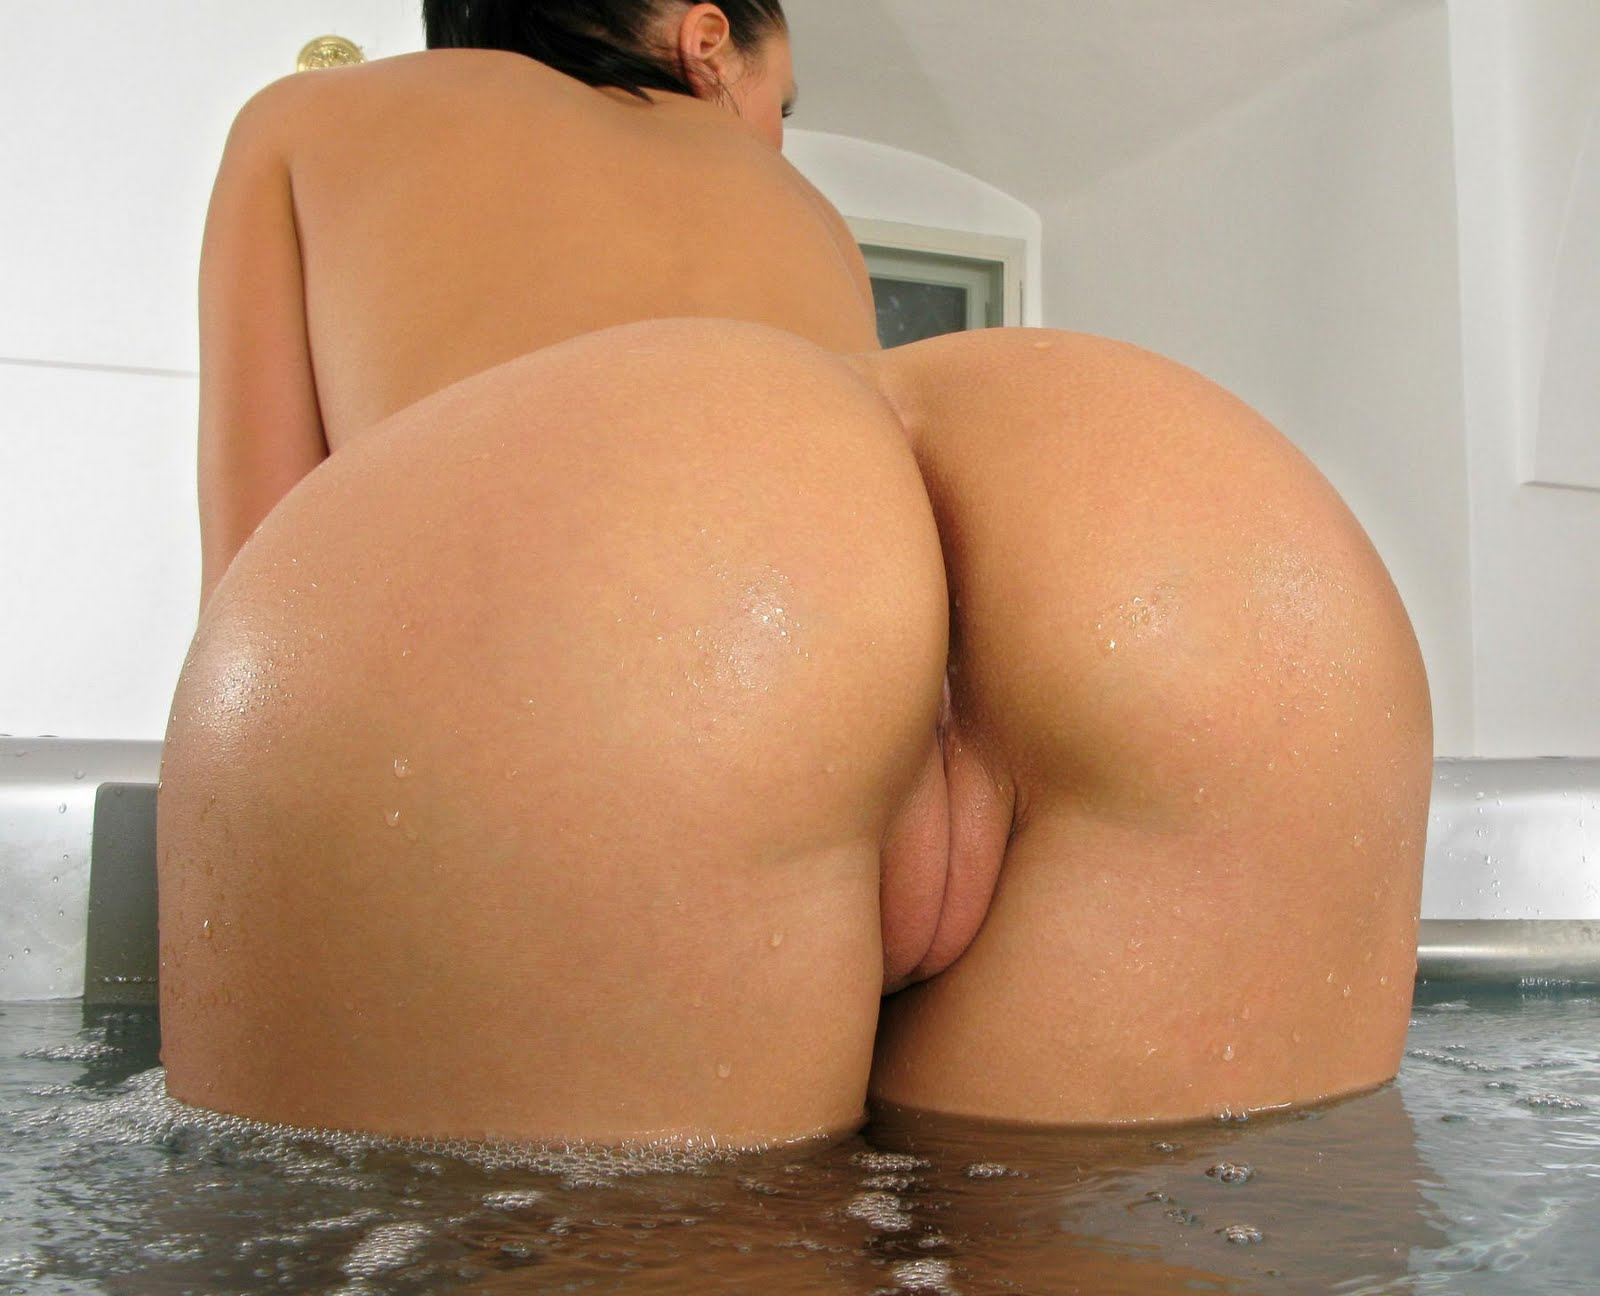 Big perfect ass and pussy